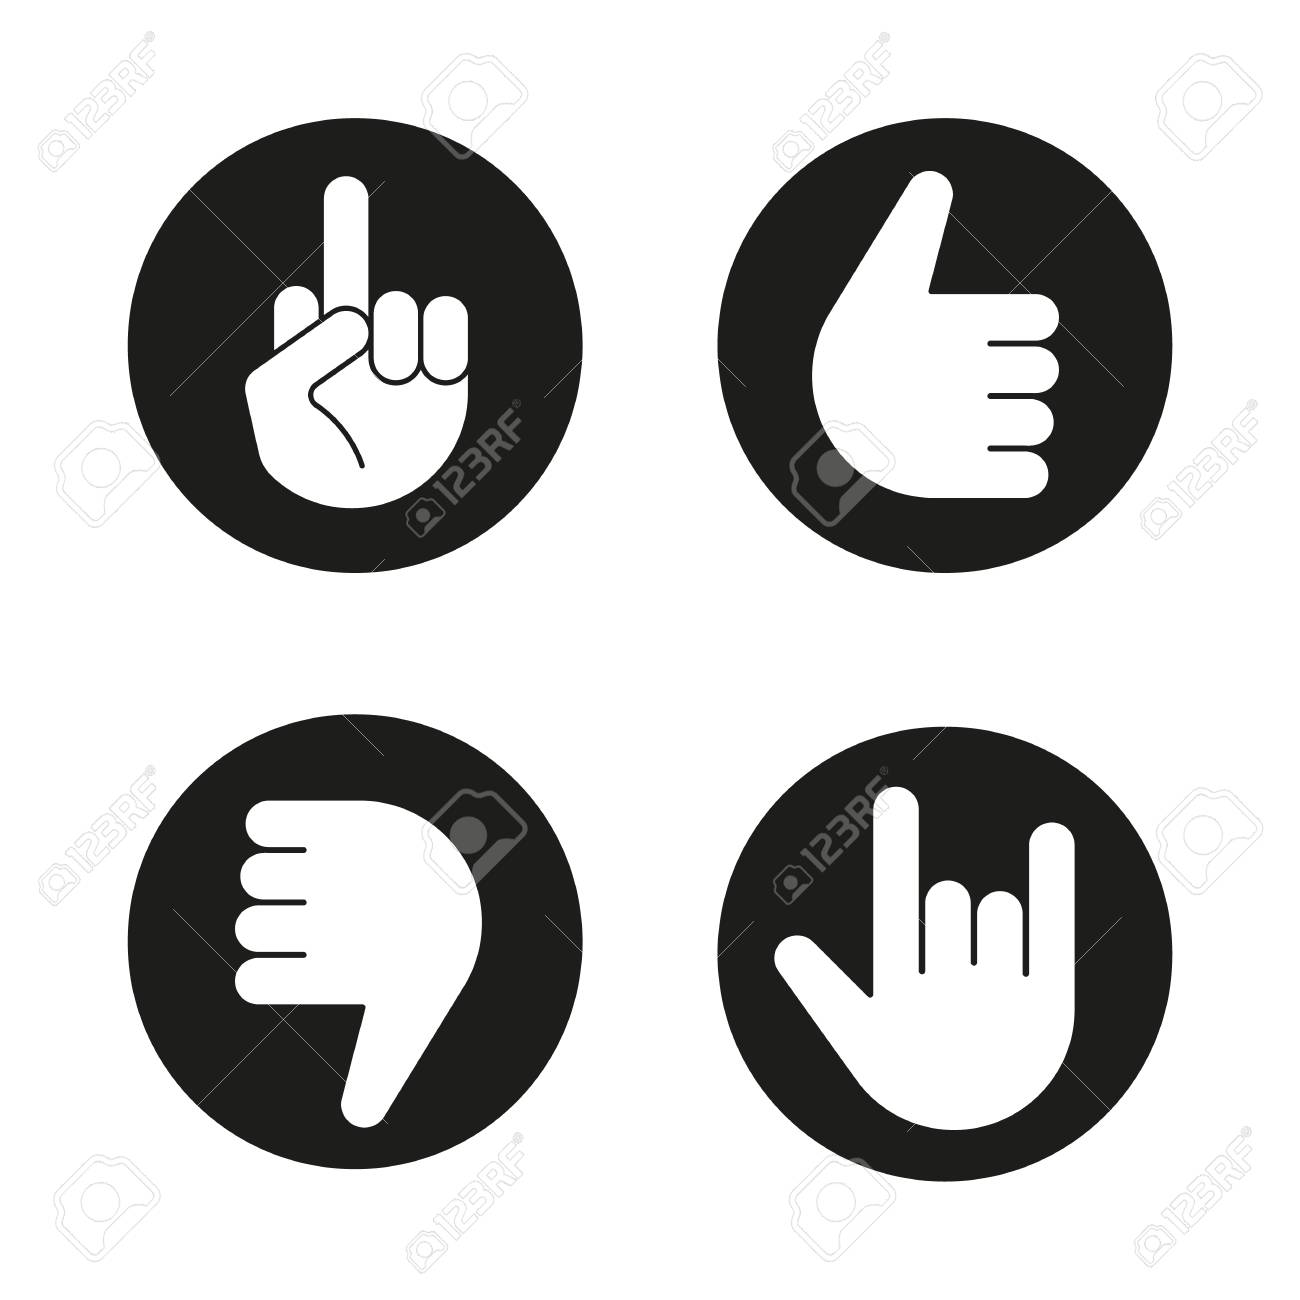 hand gestures icons set thumbs up dislike heavy metal middle